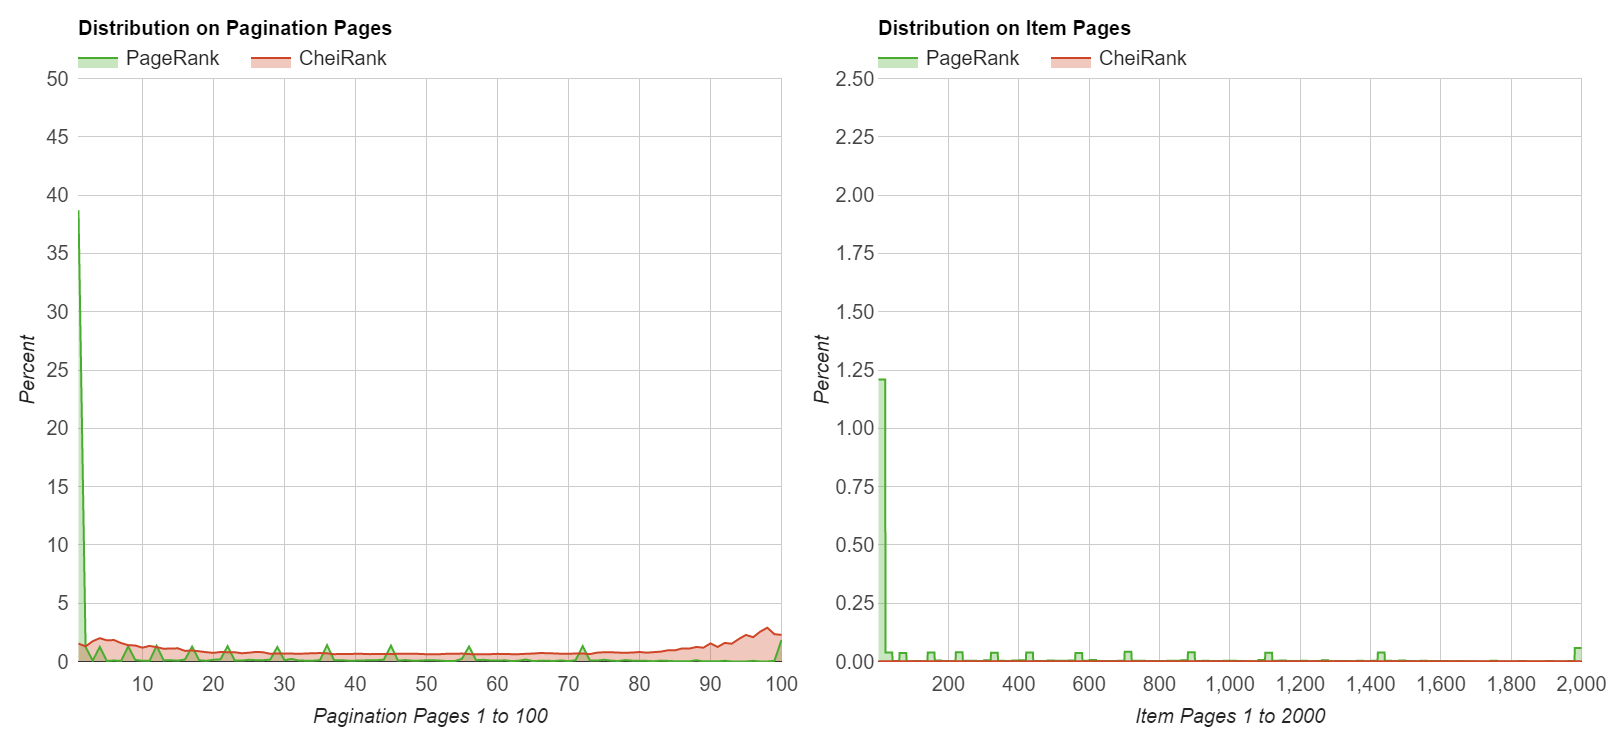 PageRank and CheiRank Distribution for Logarithmic Pagination